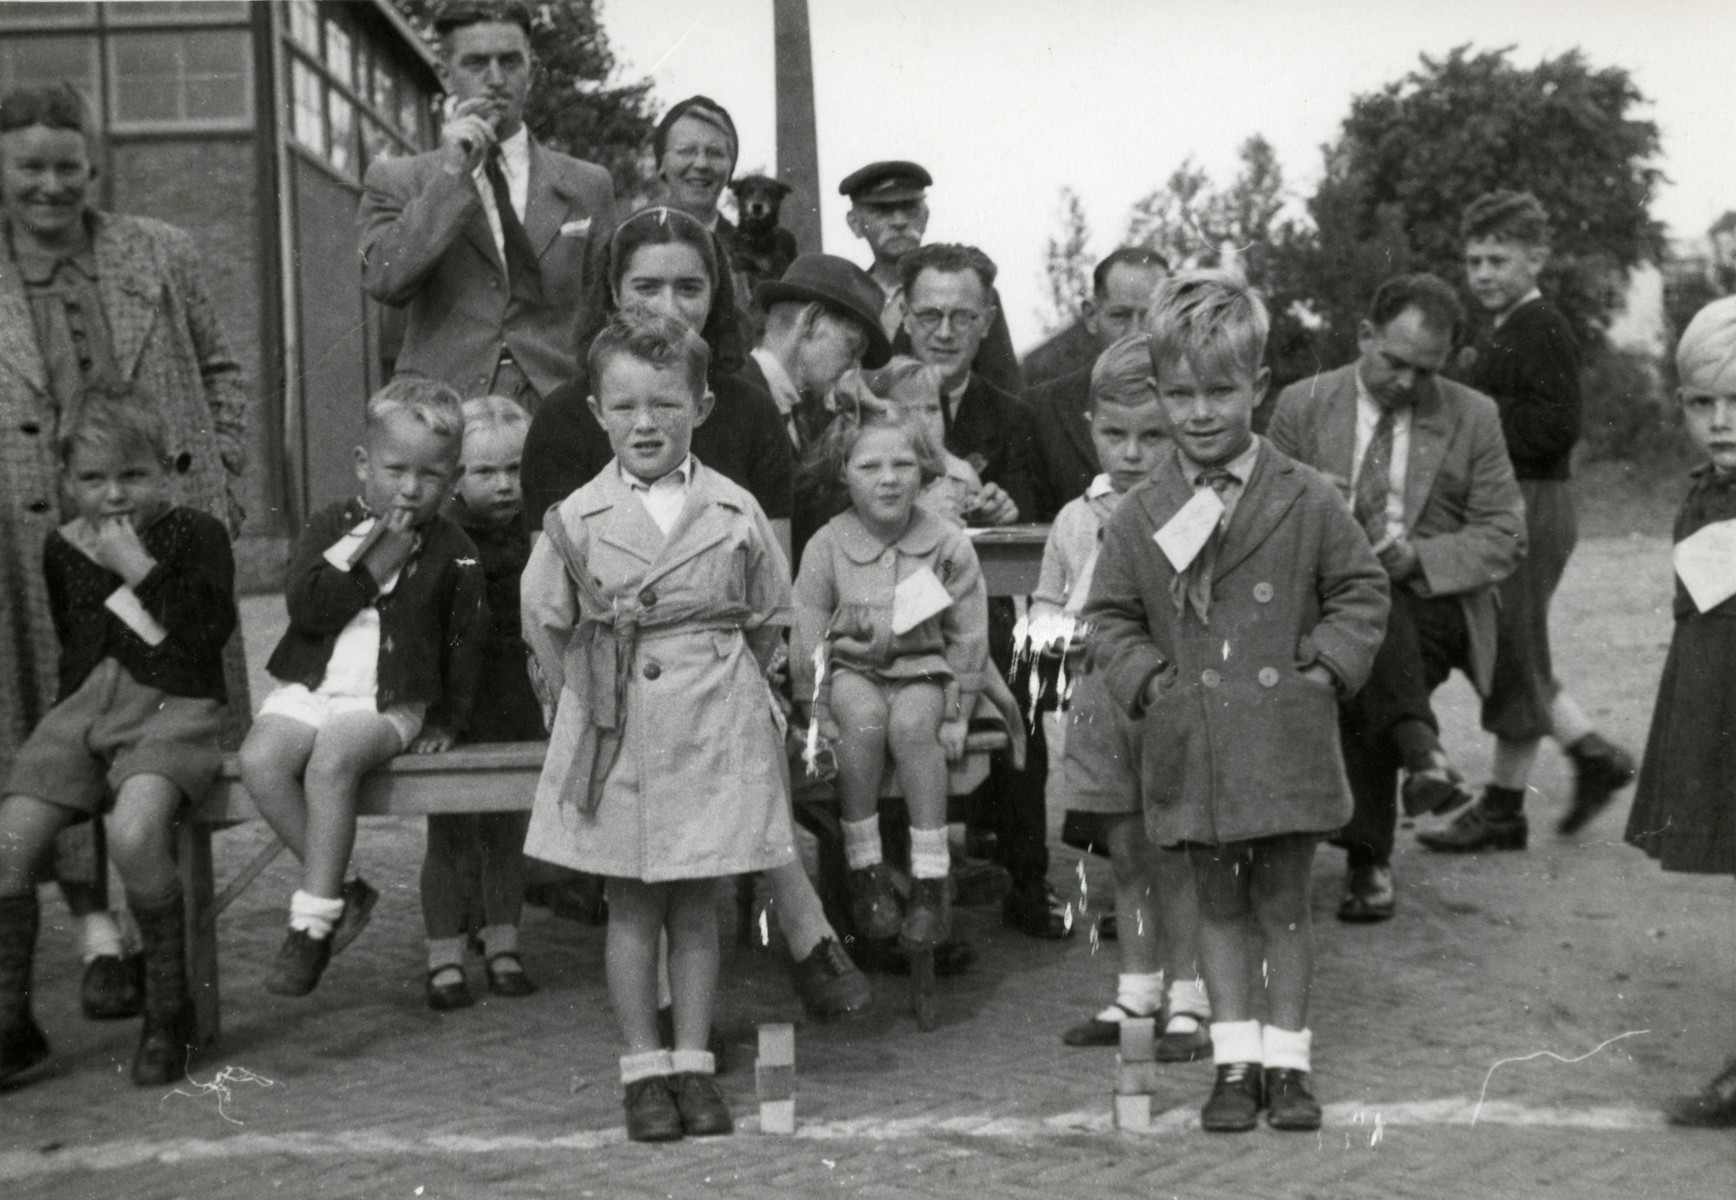 Residents of Dordrecht celebrate the liberation of their town.  Margalit Lujten is pictured partially obscured sitting behind a young child.